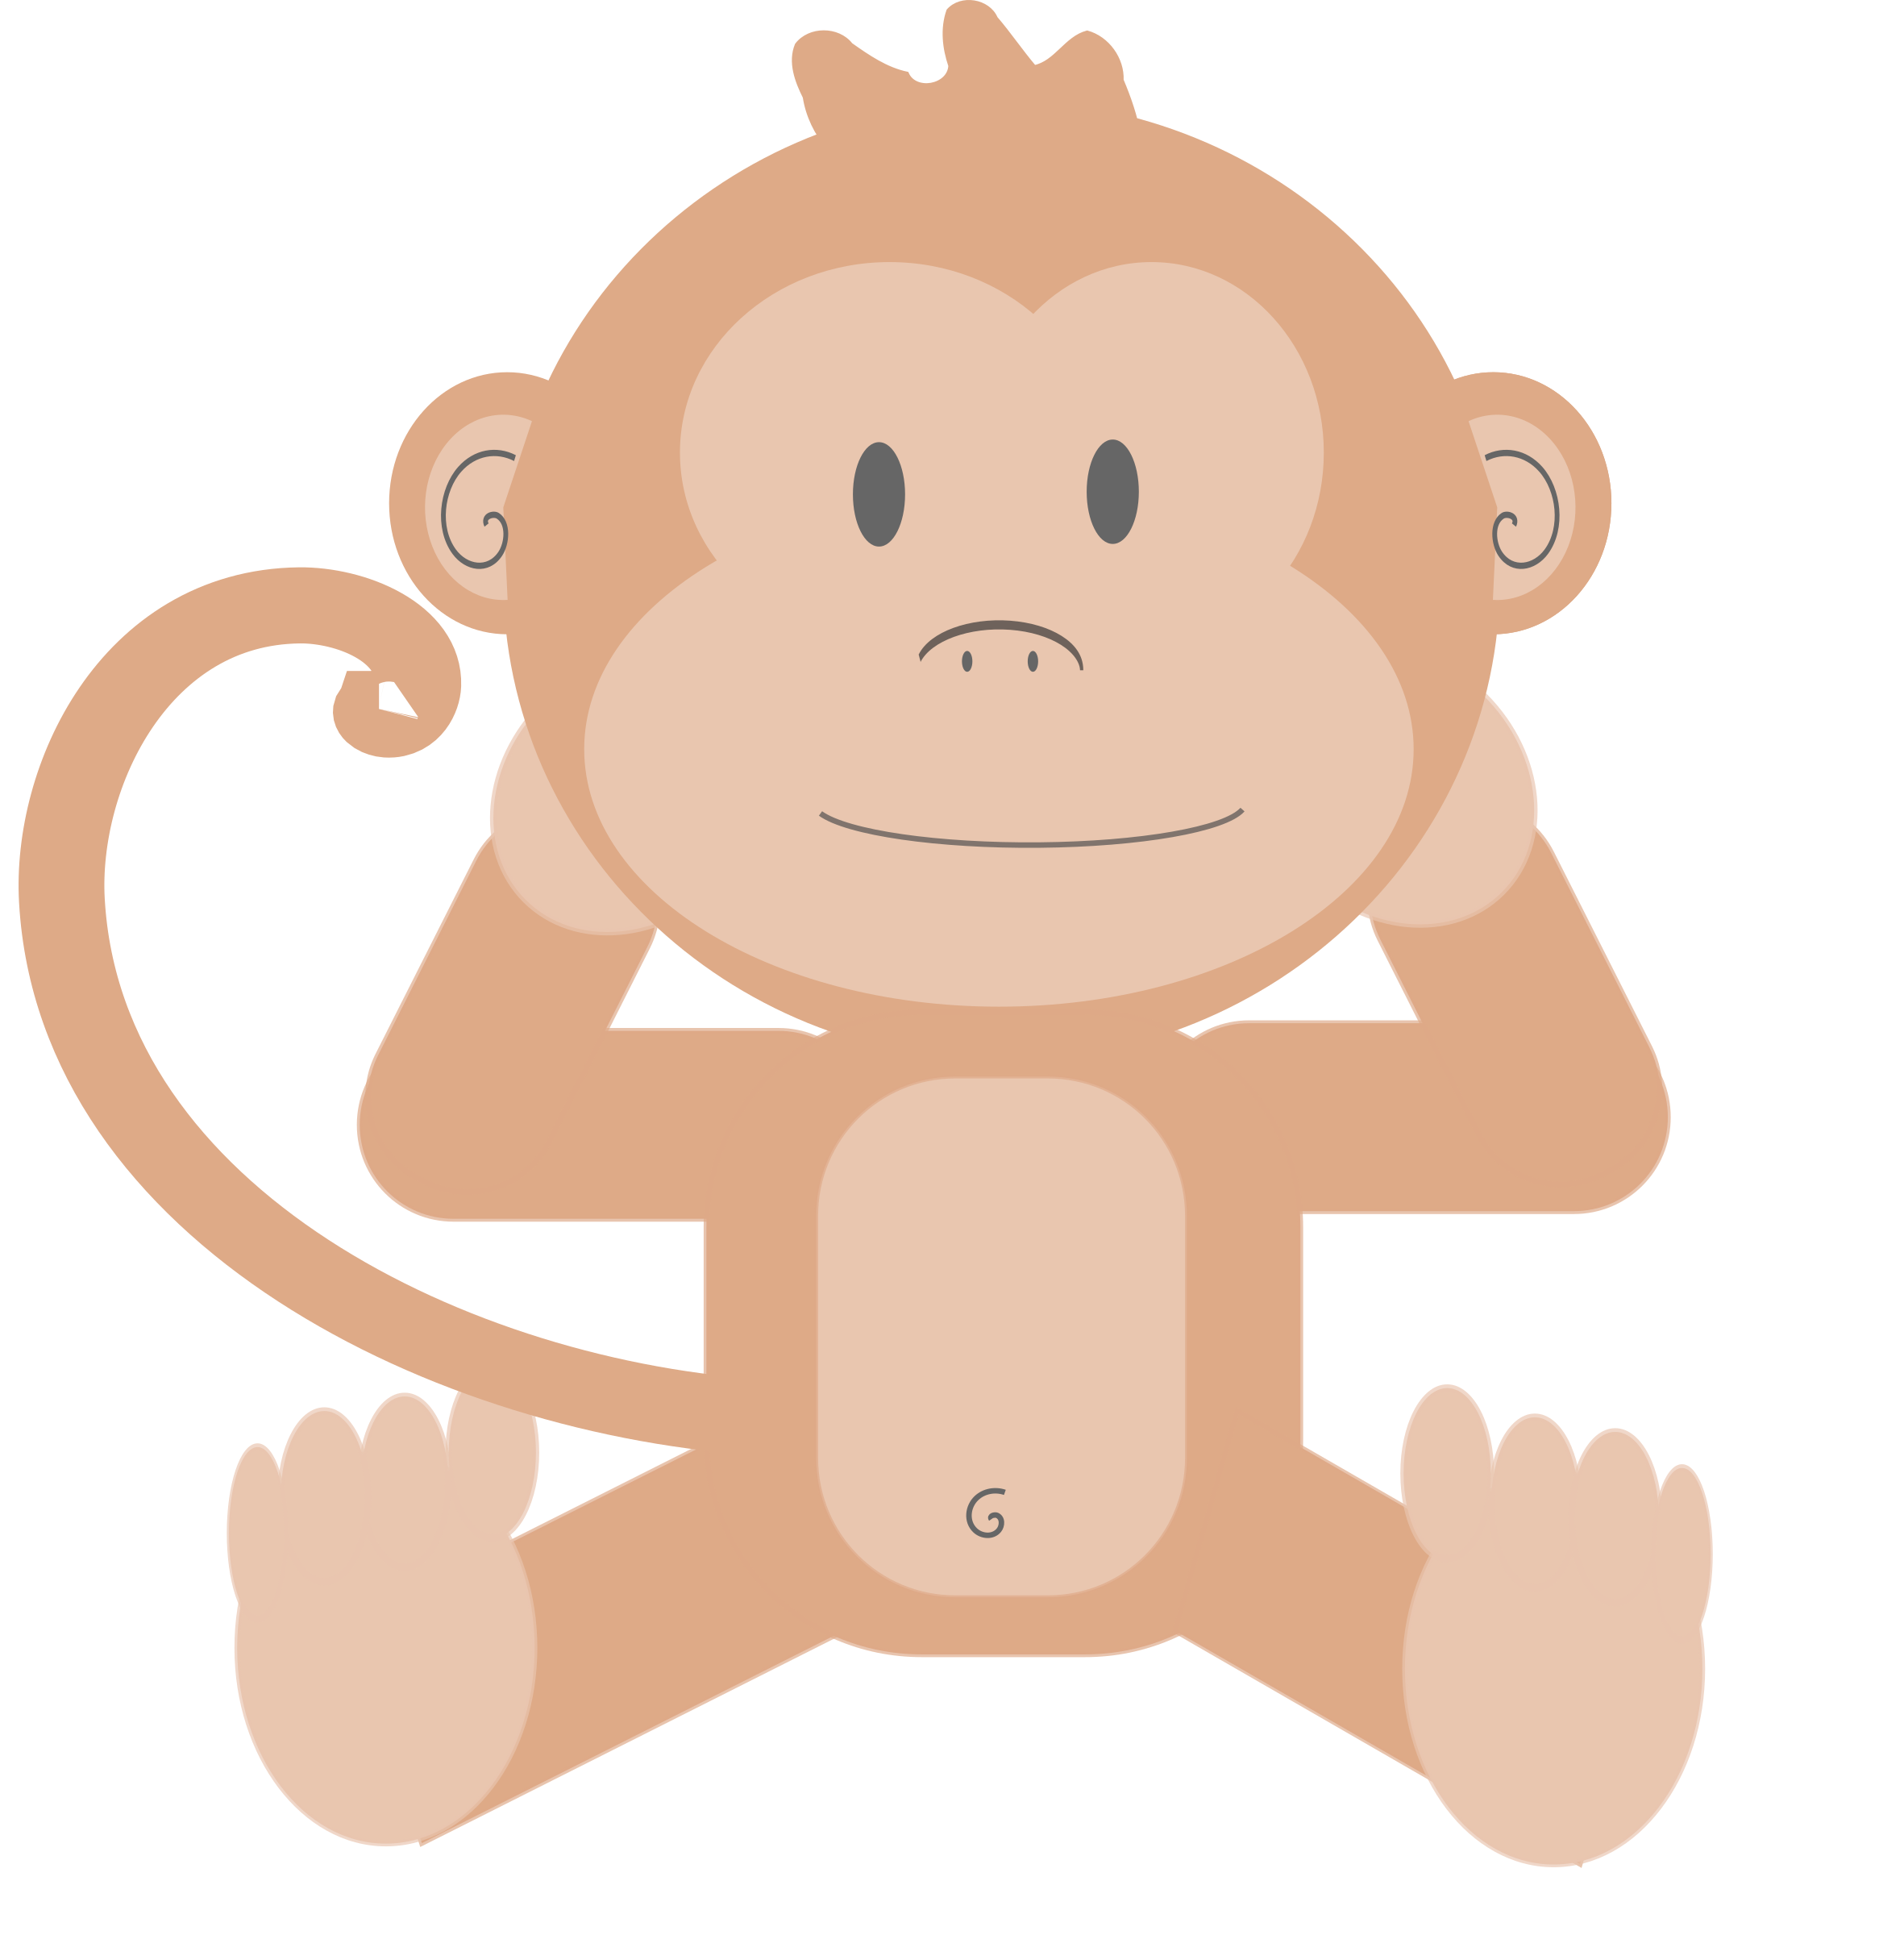 Monkeys eating bananas clipart png. Cartoon monkey without his